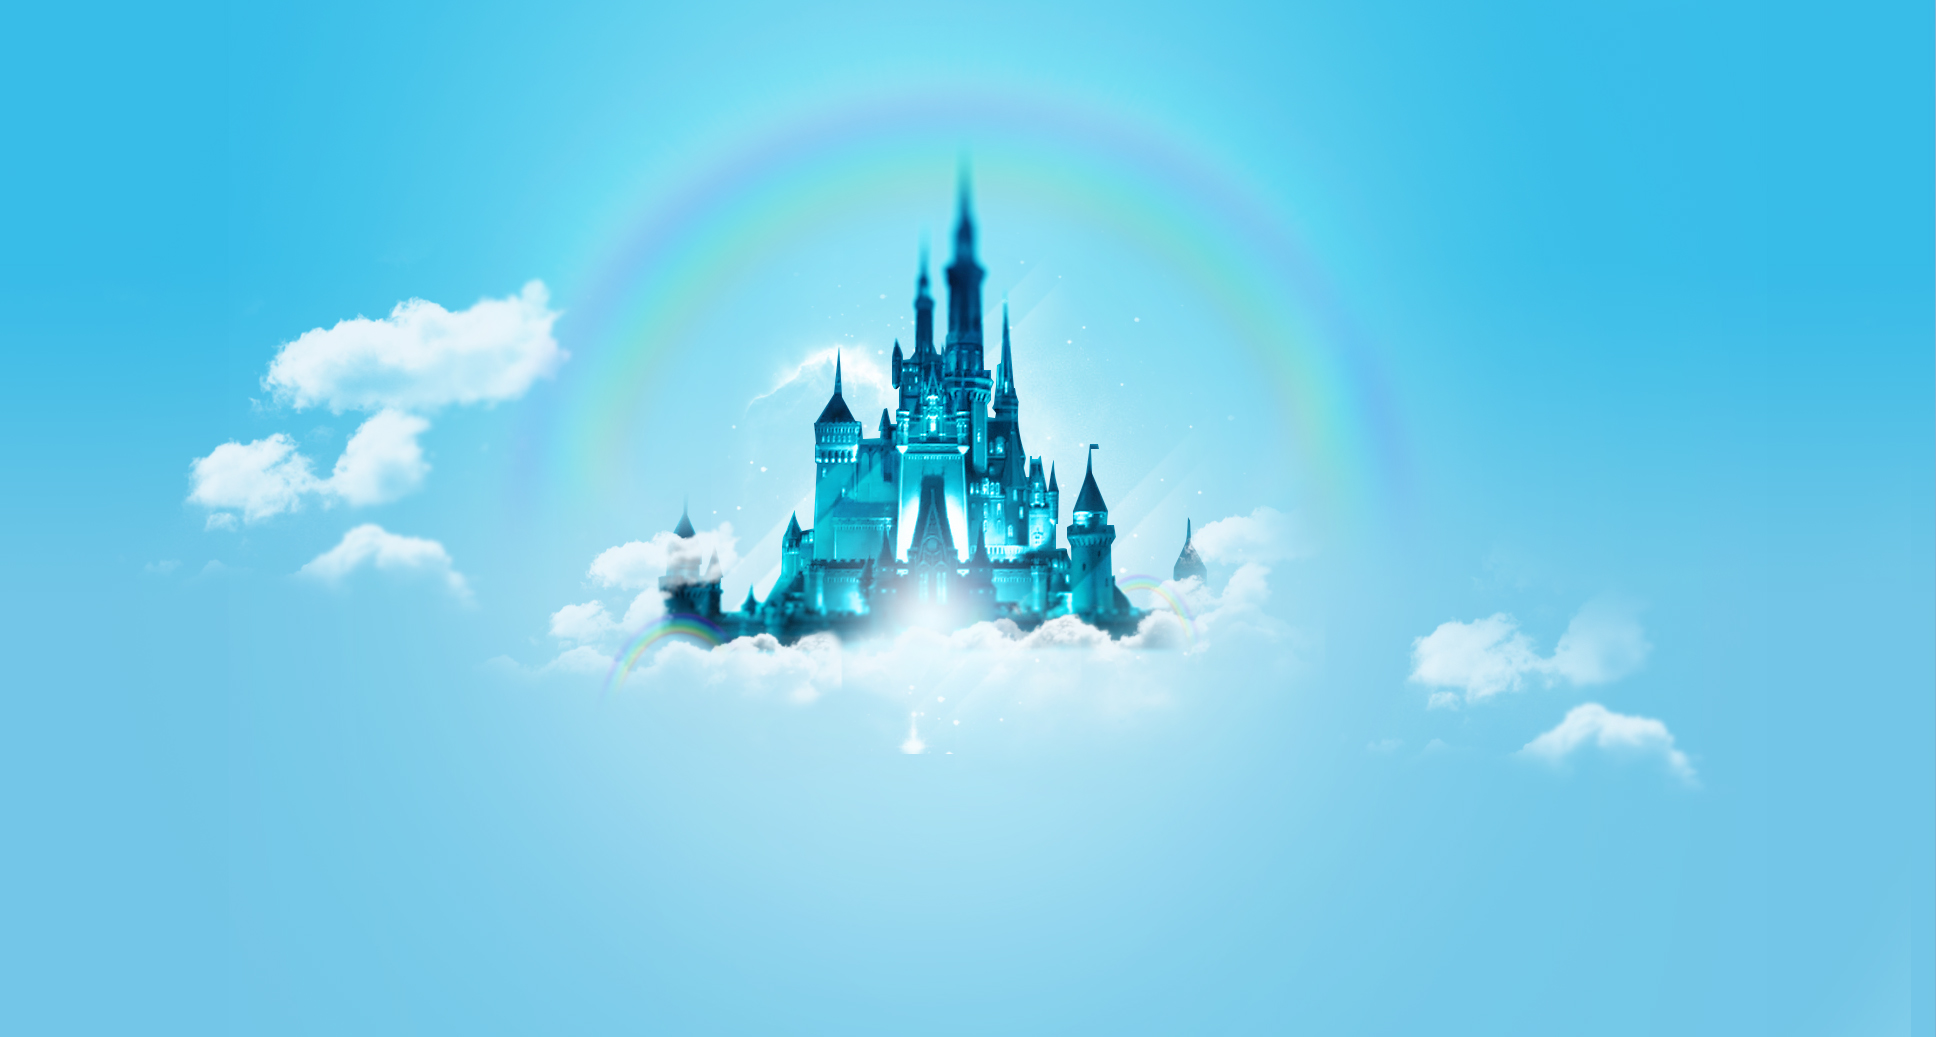 wallpaper walt disney by 0mega hd customization wallpaper fantasy 2012 1936x1037